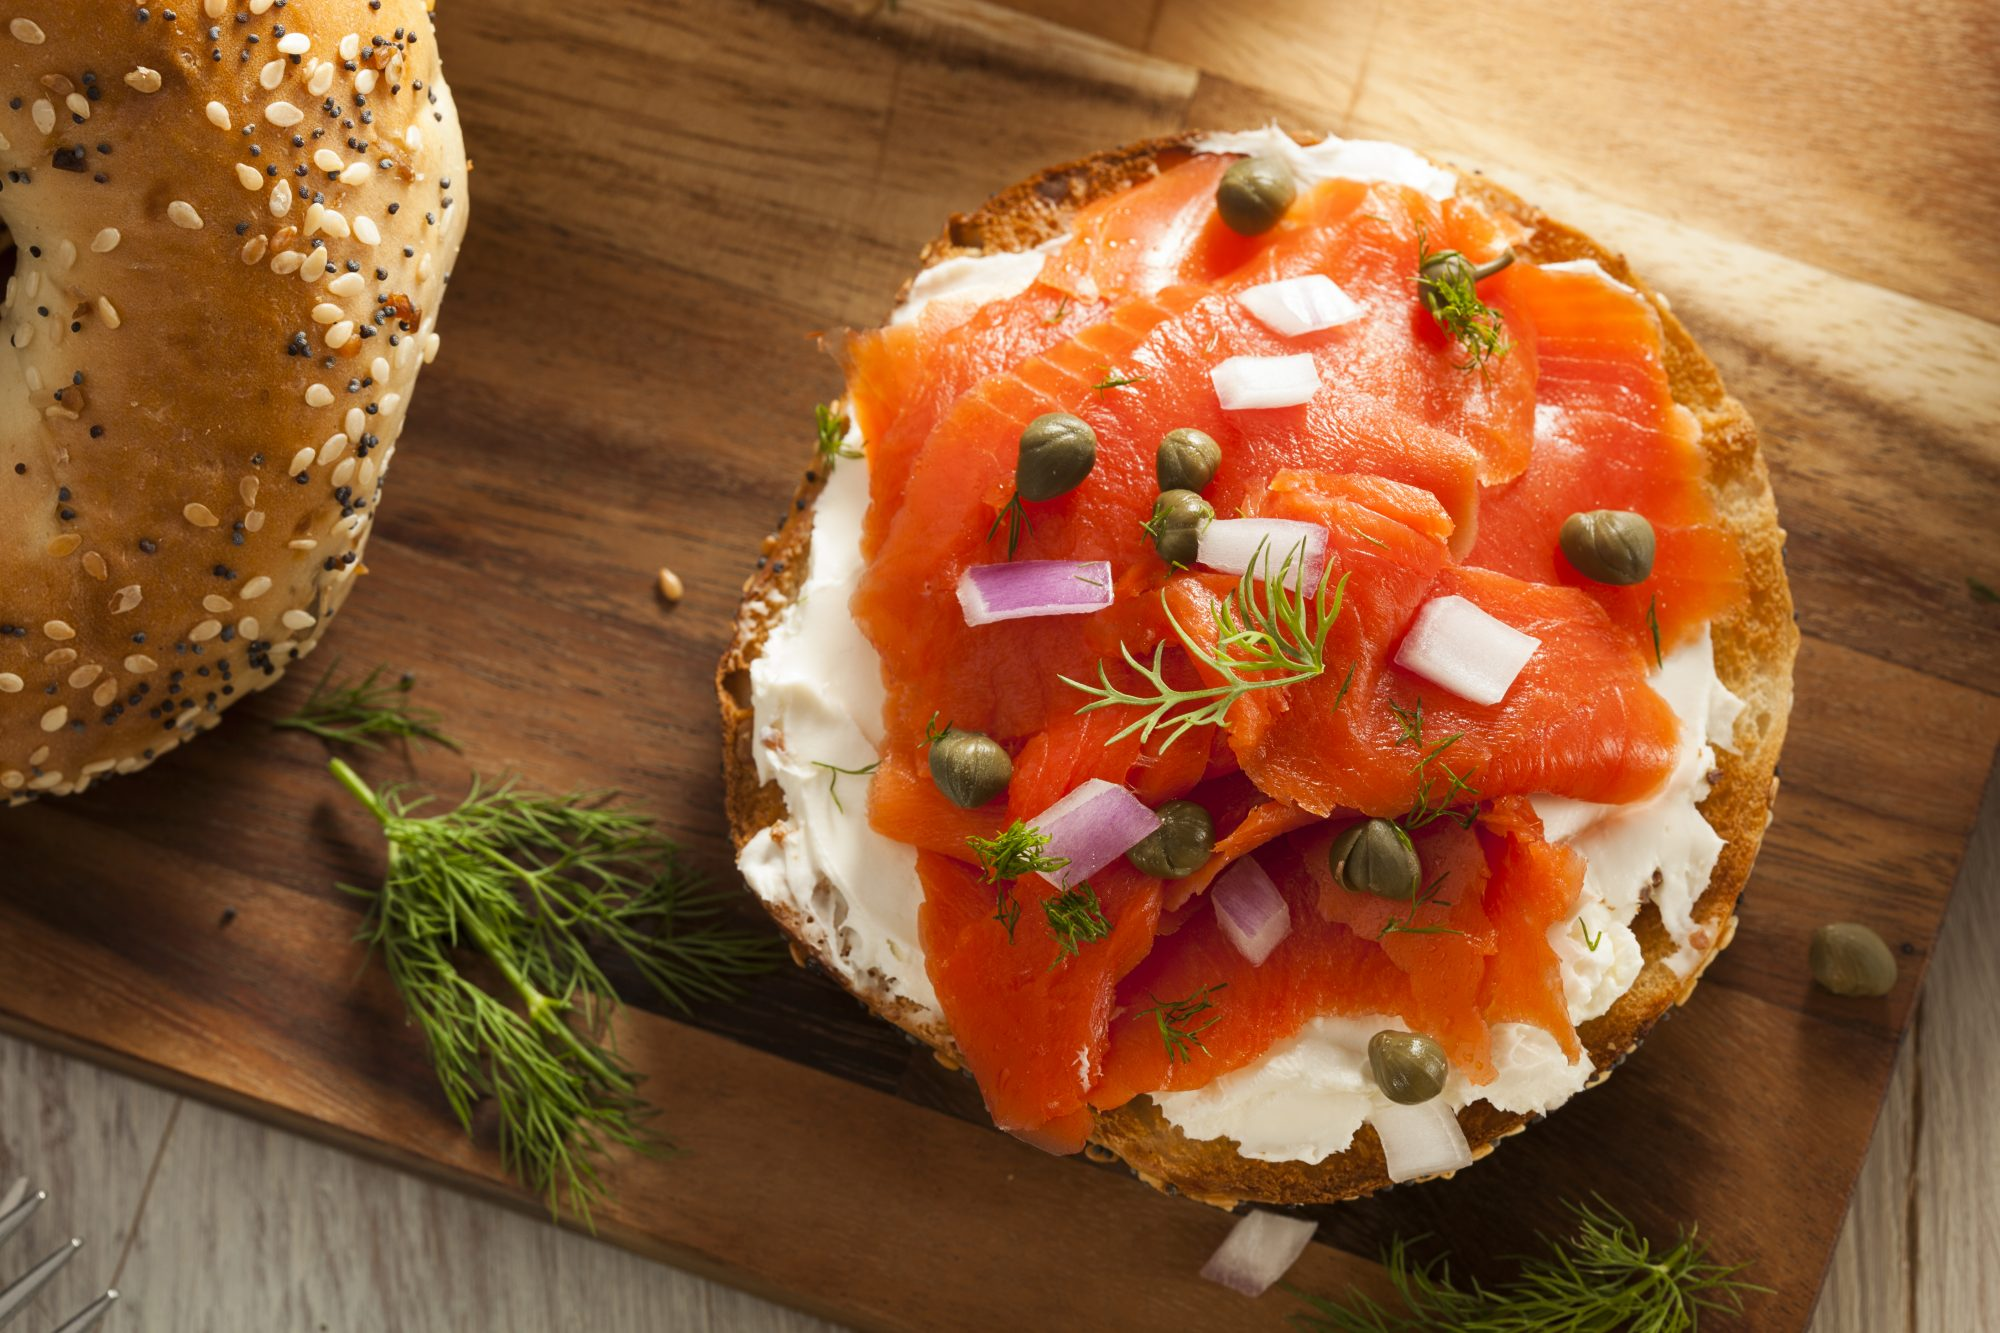 Bagel and Lox with Capers Getty 3/24/20